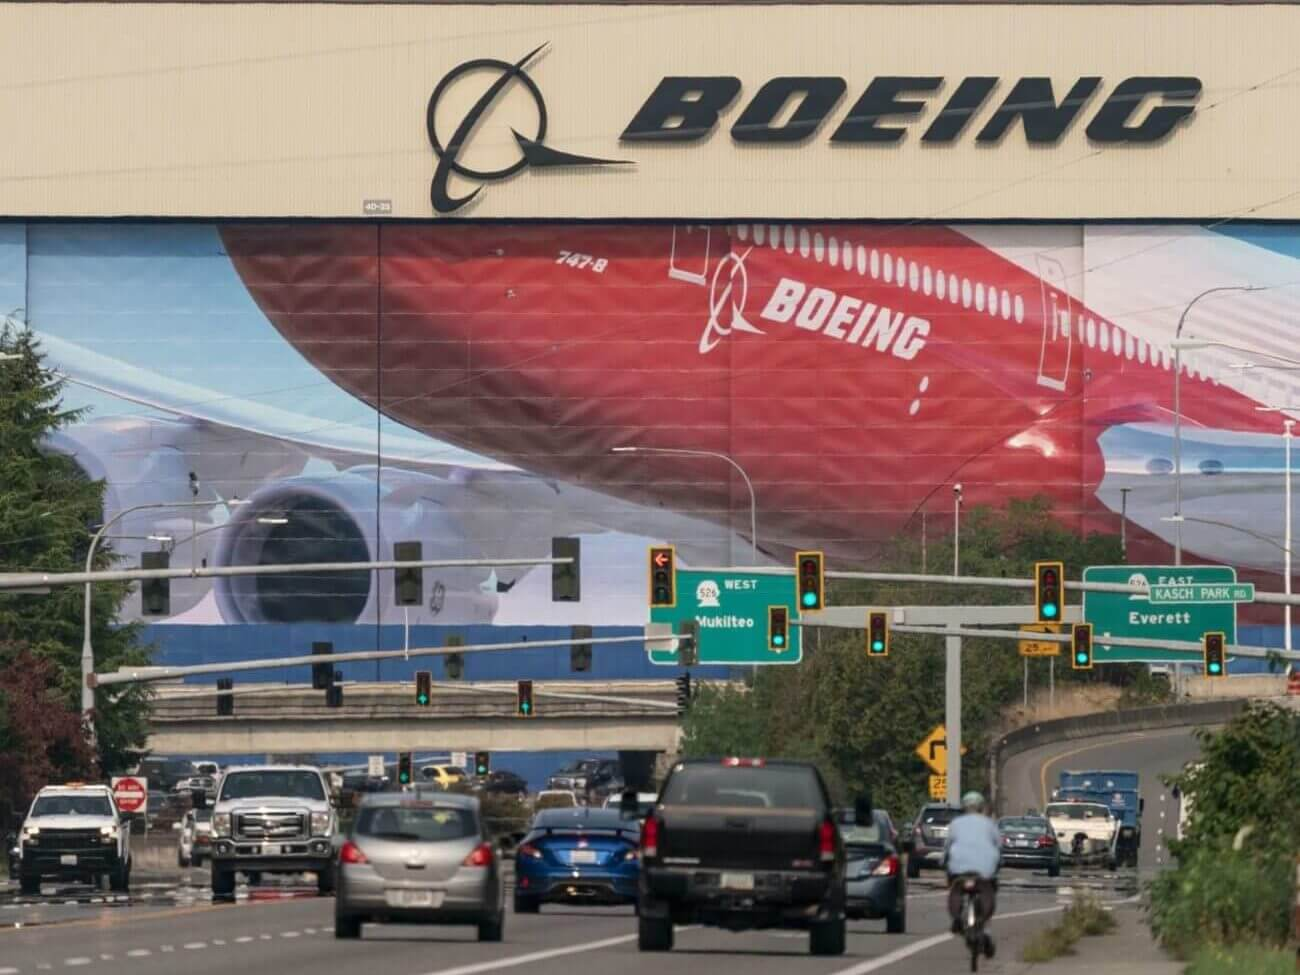 Boeing Is the Most recent Company to Shatter out a Adverse Business Ambiance